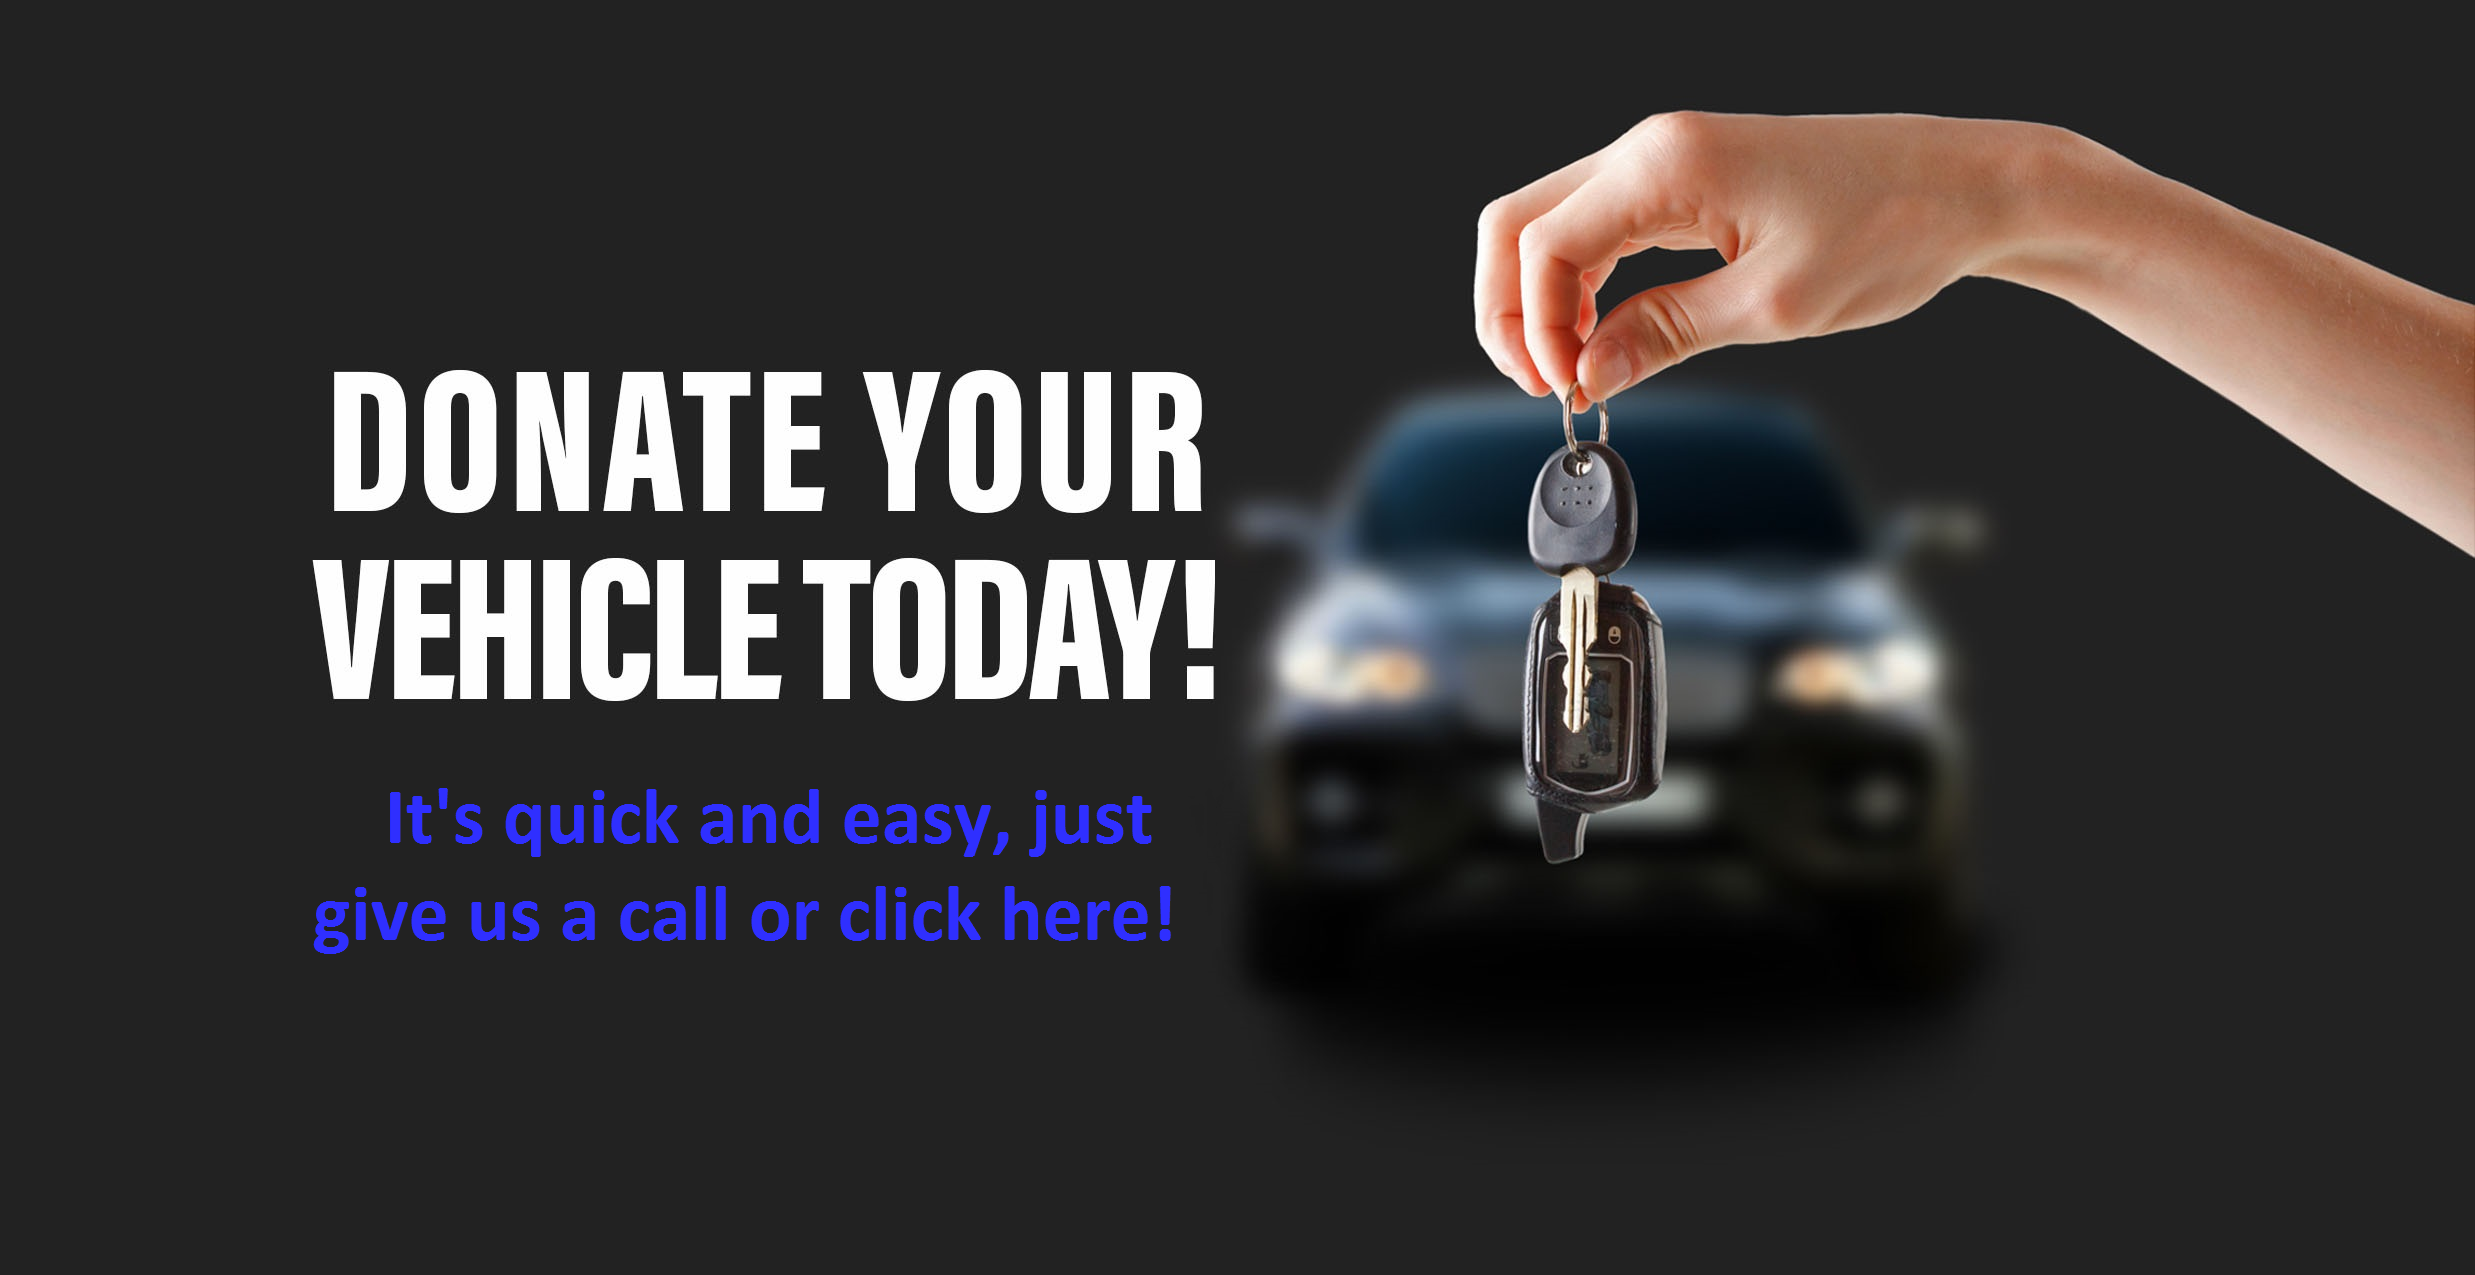 Donate Your Vehicle to SMC